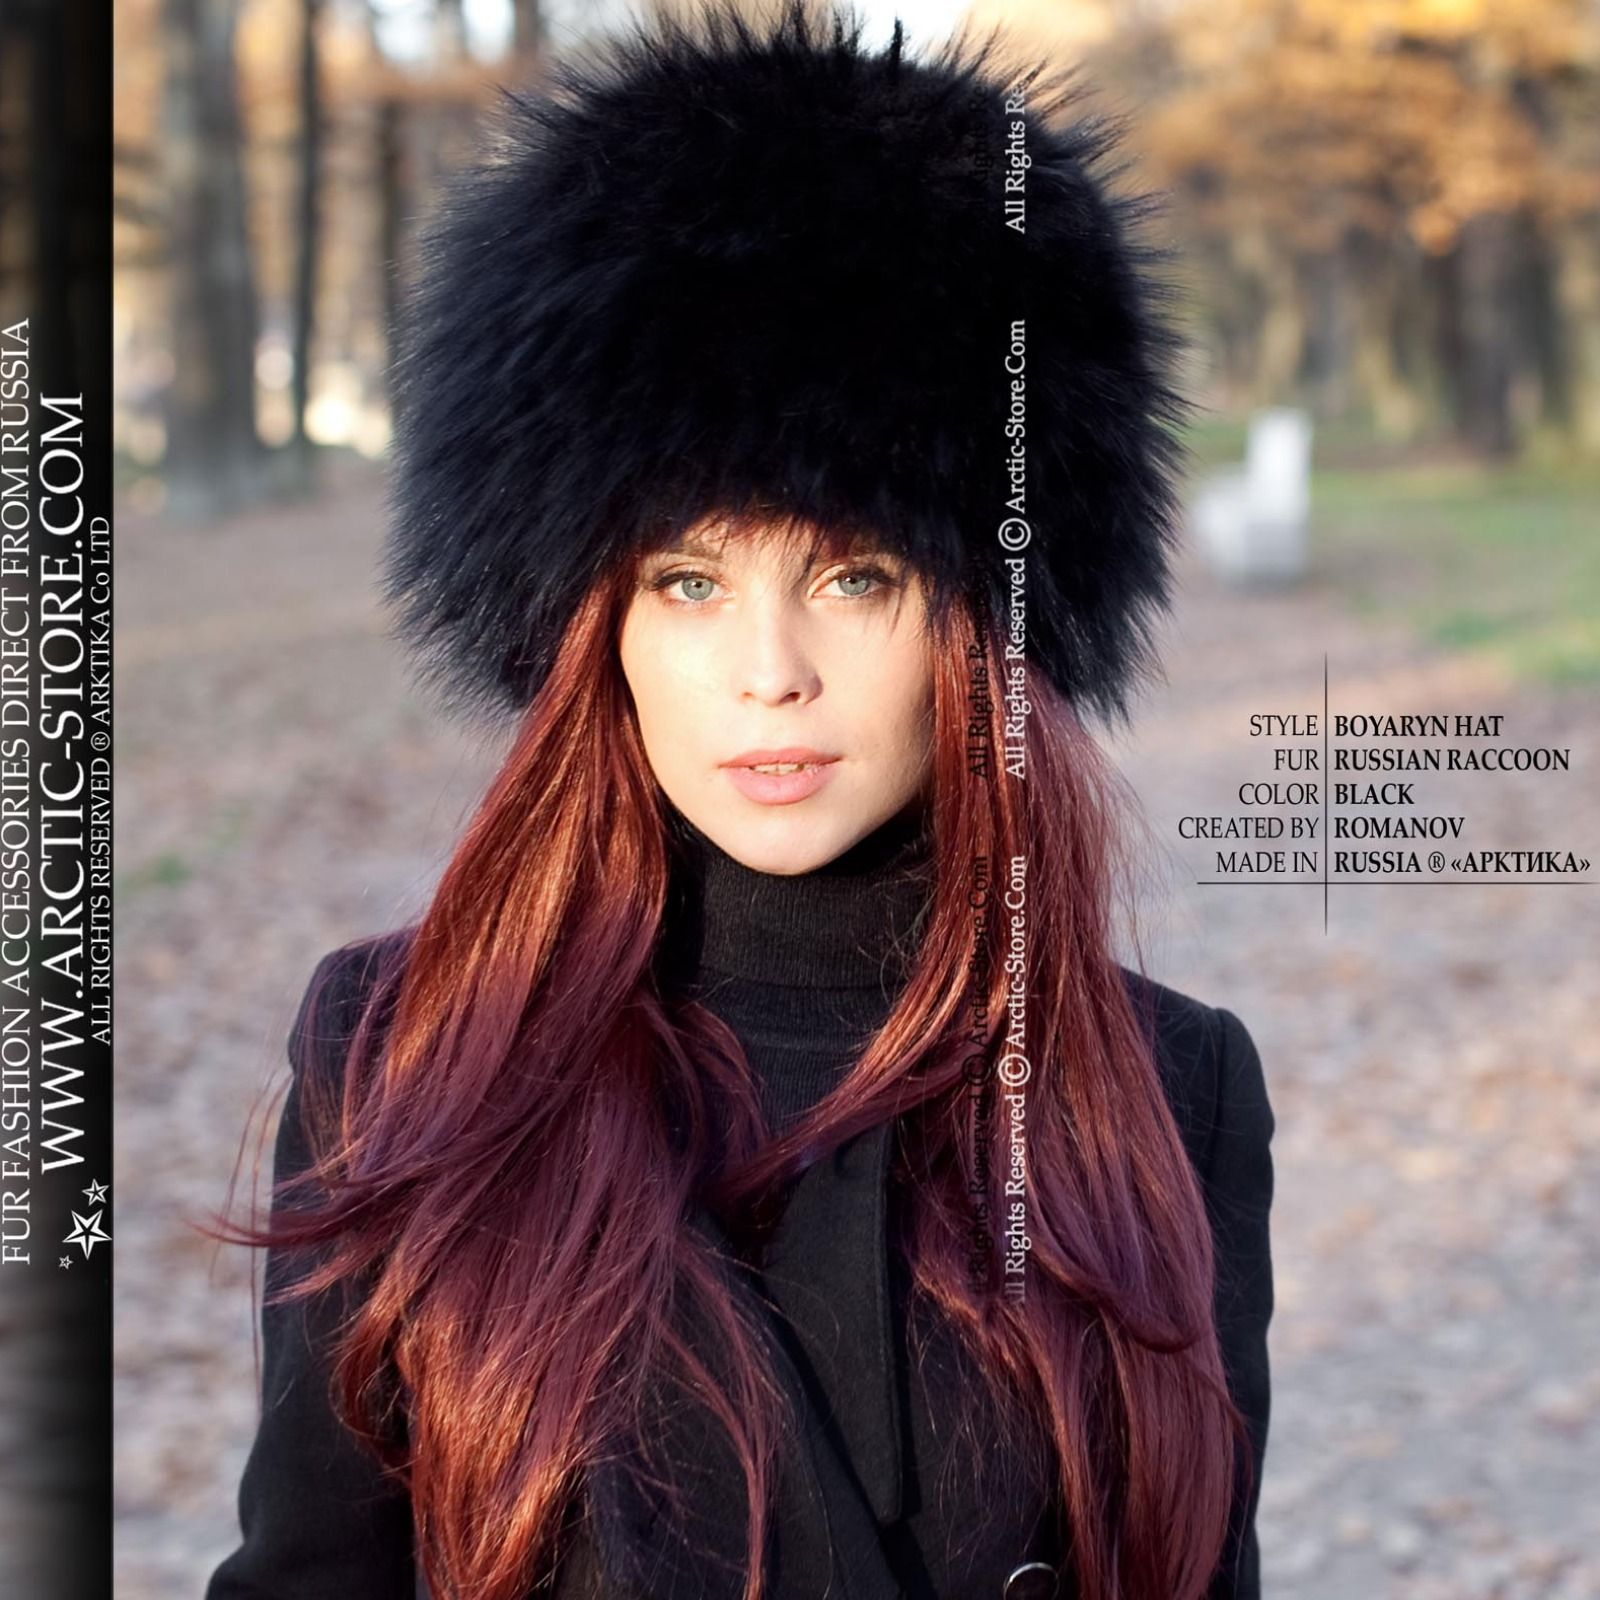 ef8dbb67 The fur consists of two types of hair after it is colored. The shorter base  hairs receive a matte black color, but the long black ...